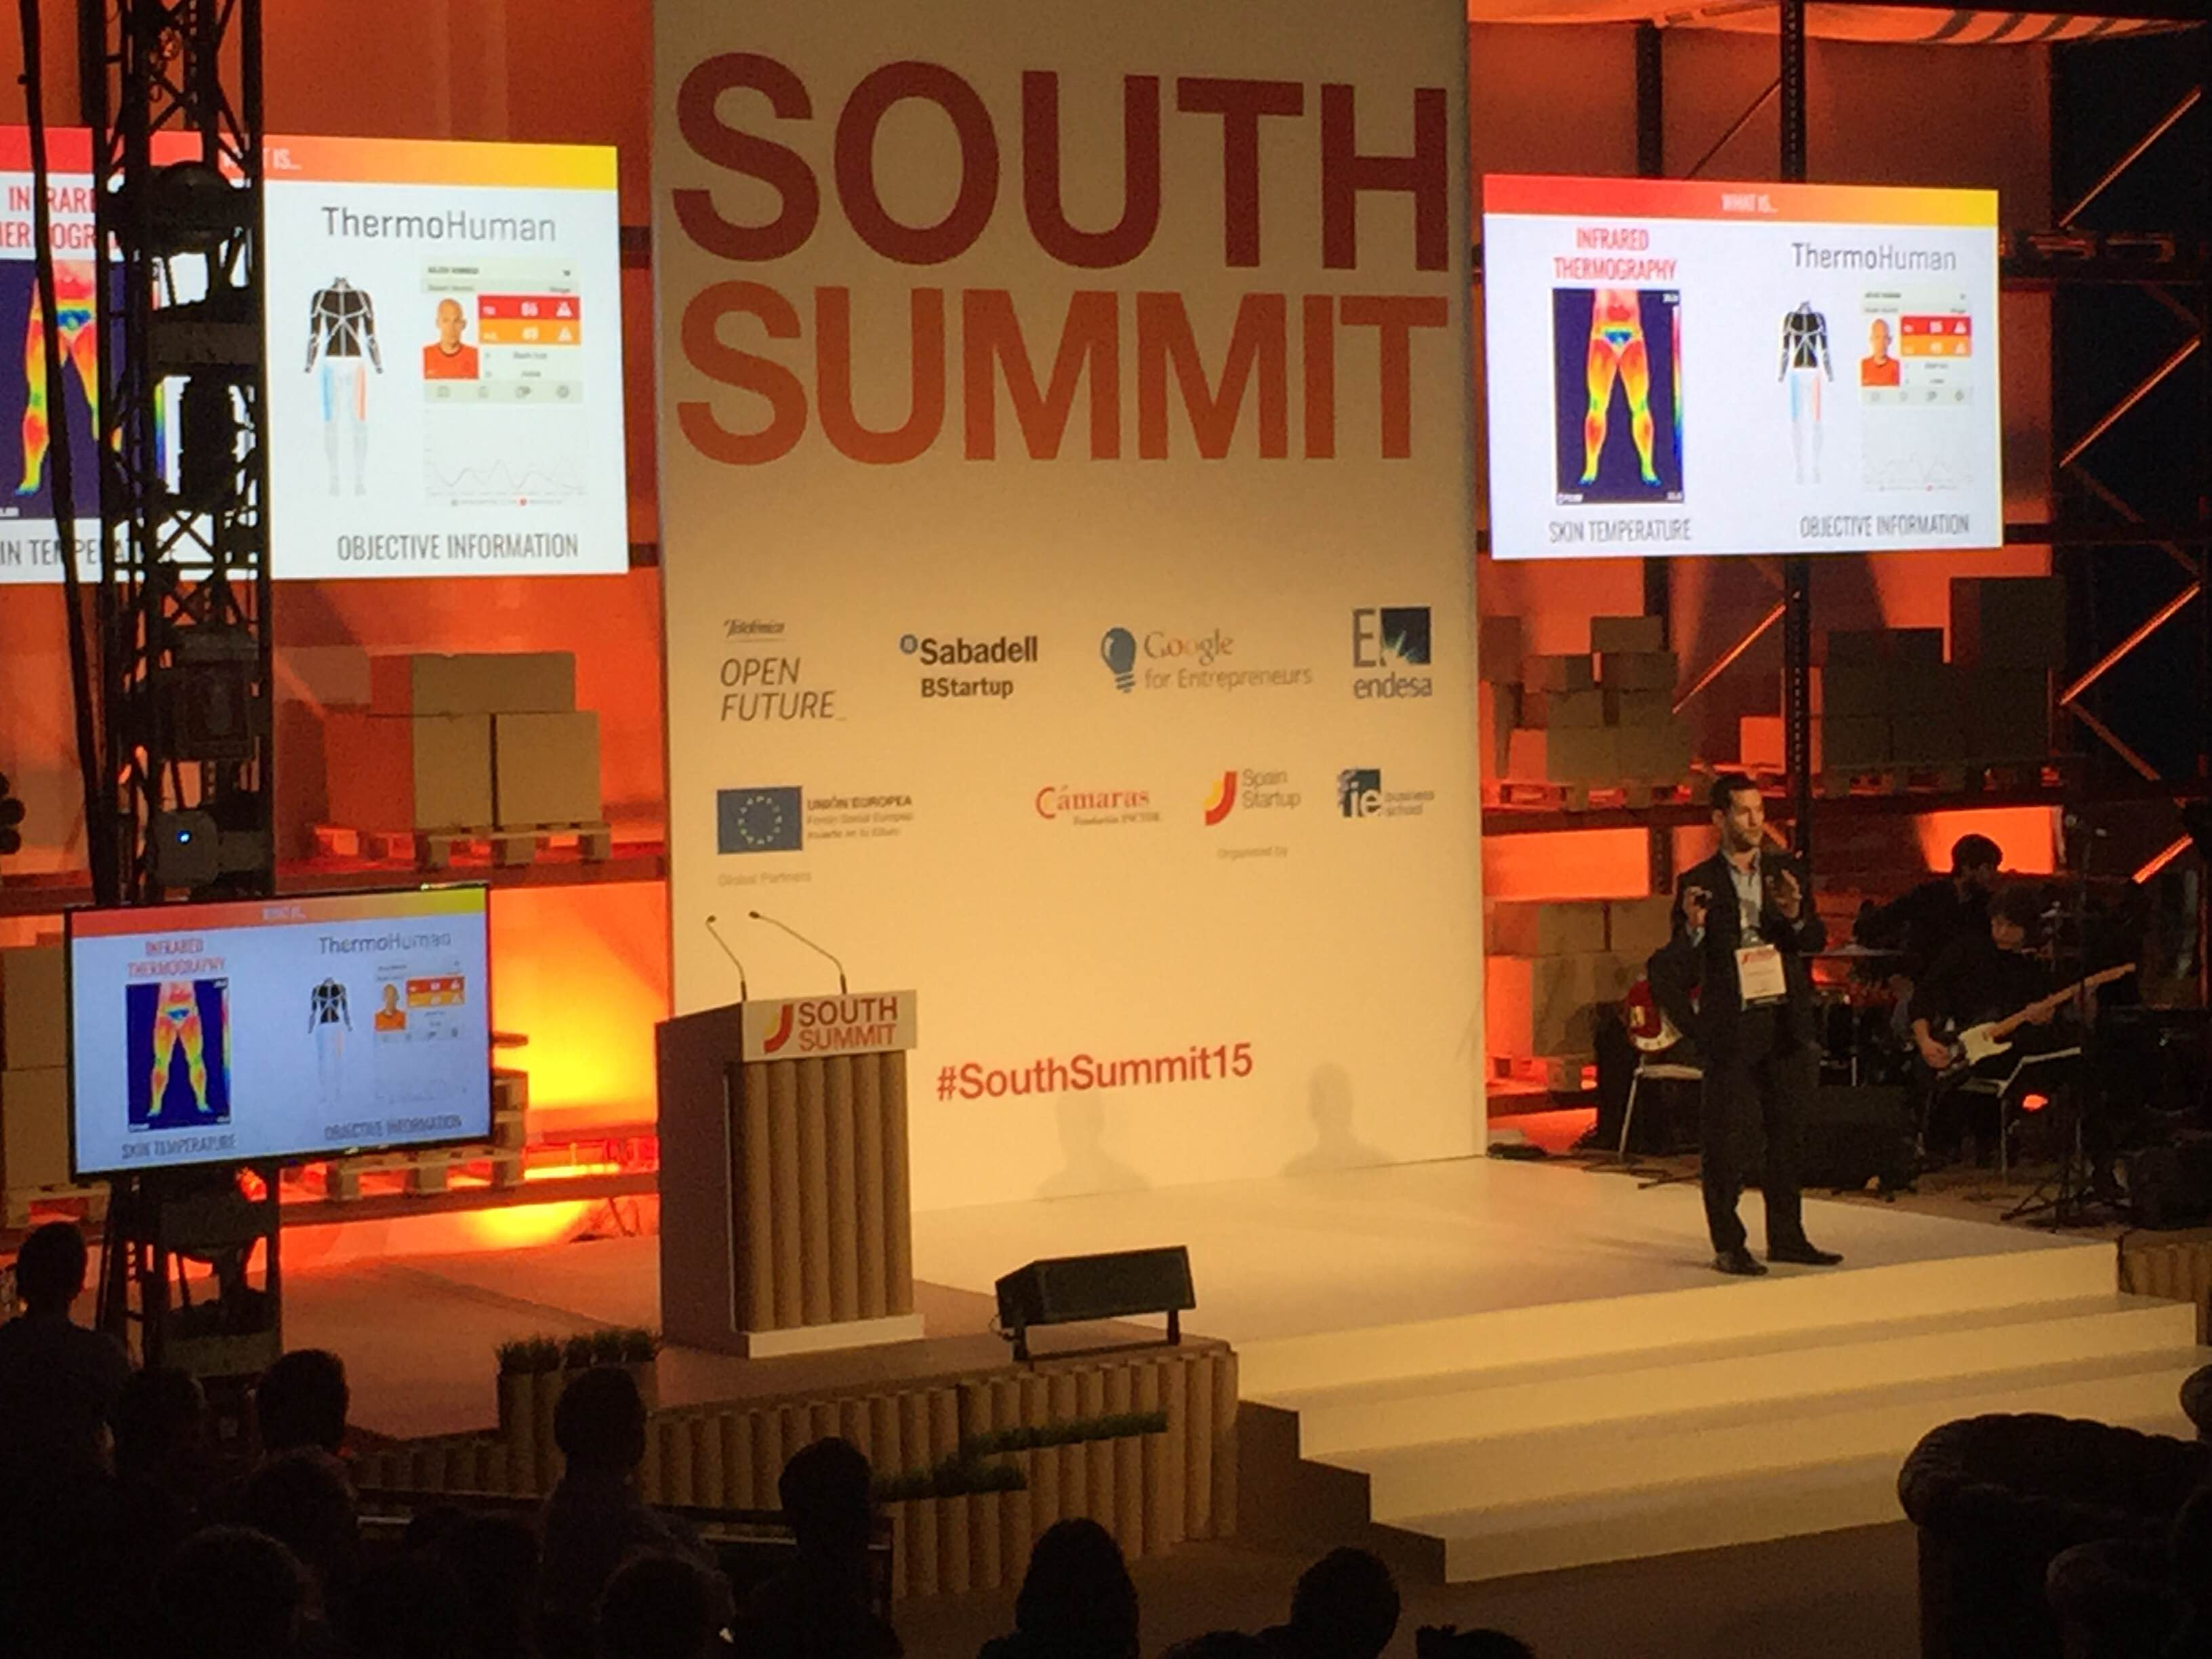 ThermoHuman awarded as one of the Biotech & Healthcare finalists of Spain Startup South Summit 2015